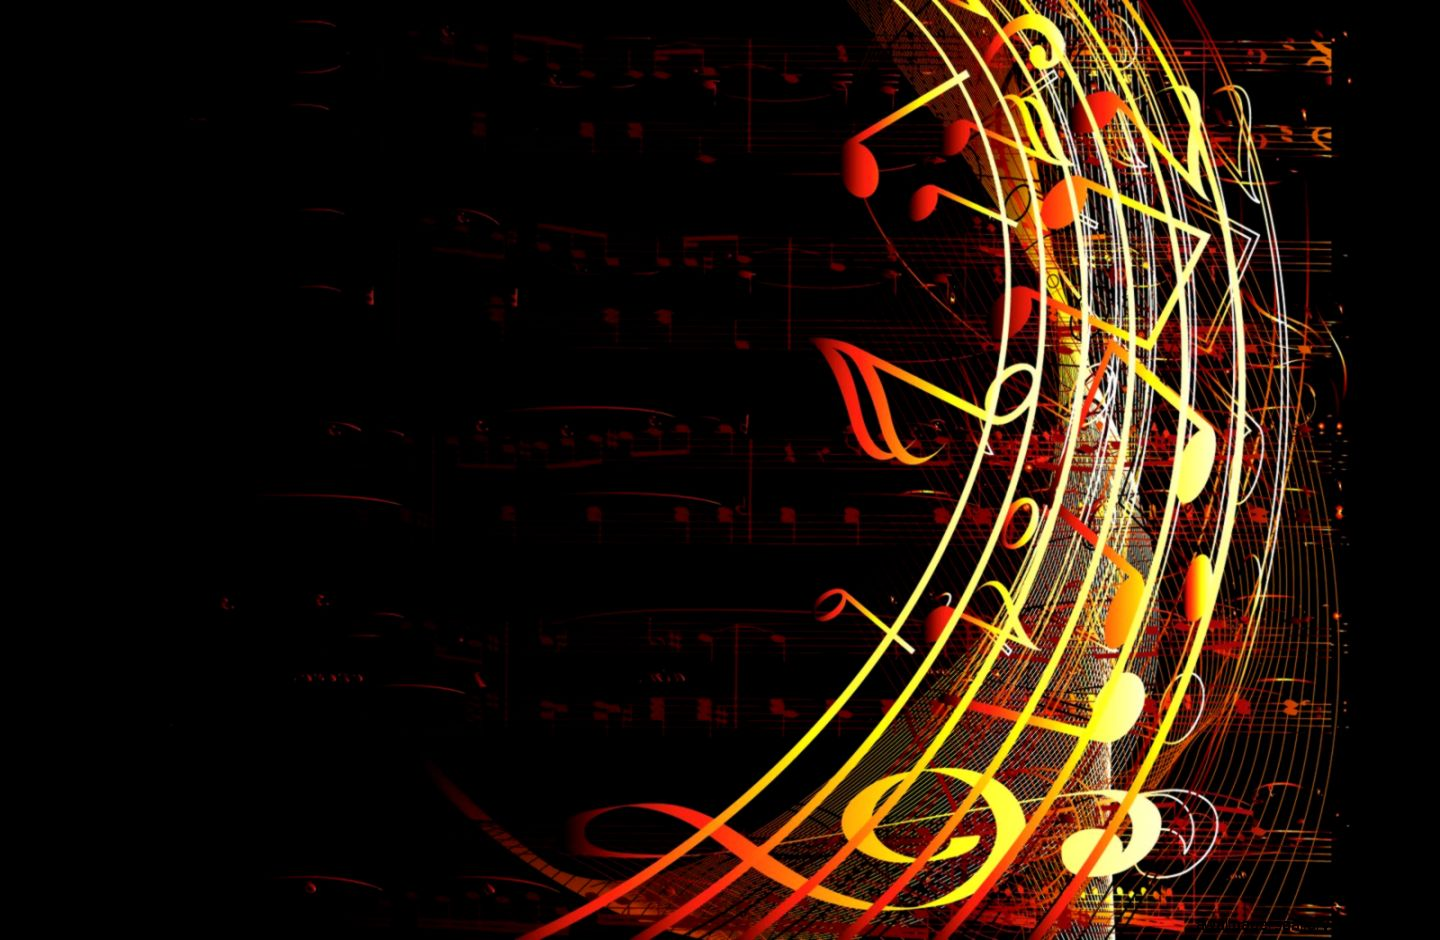 Abstract Art Music Notes Background 1 Hd Wallpapers: Abstract Music Notes Art